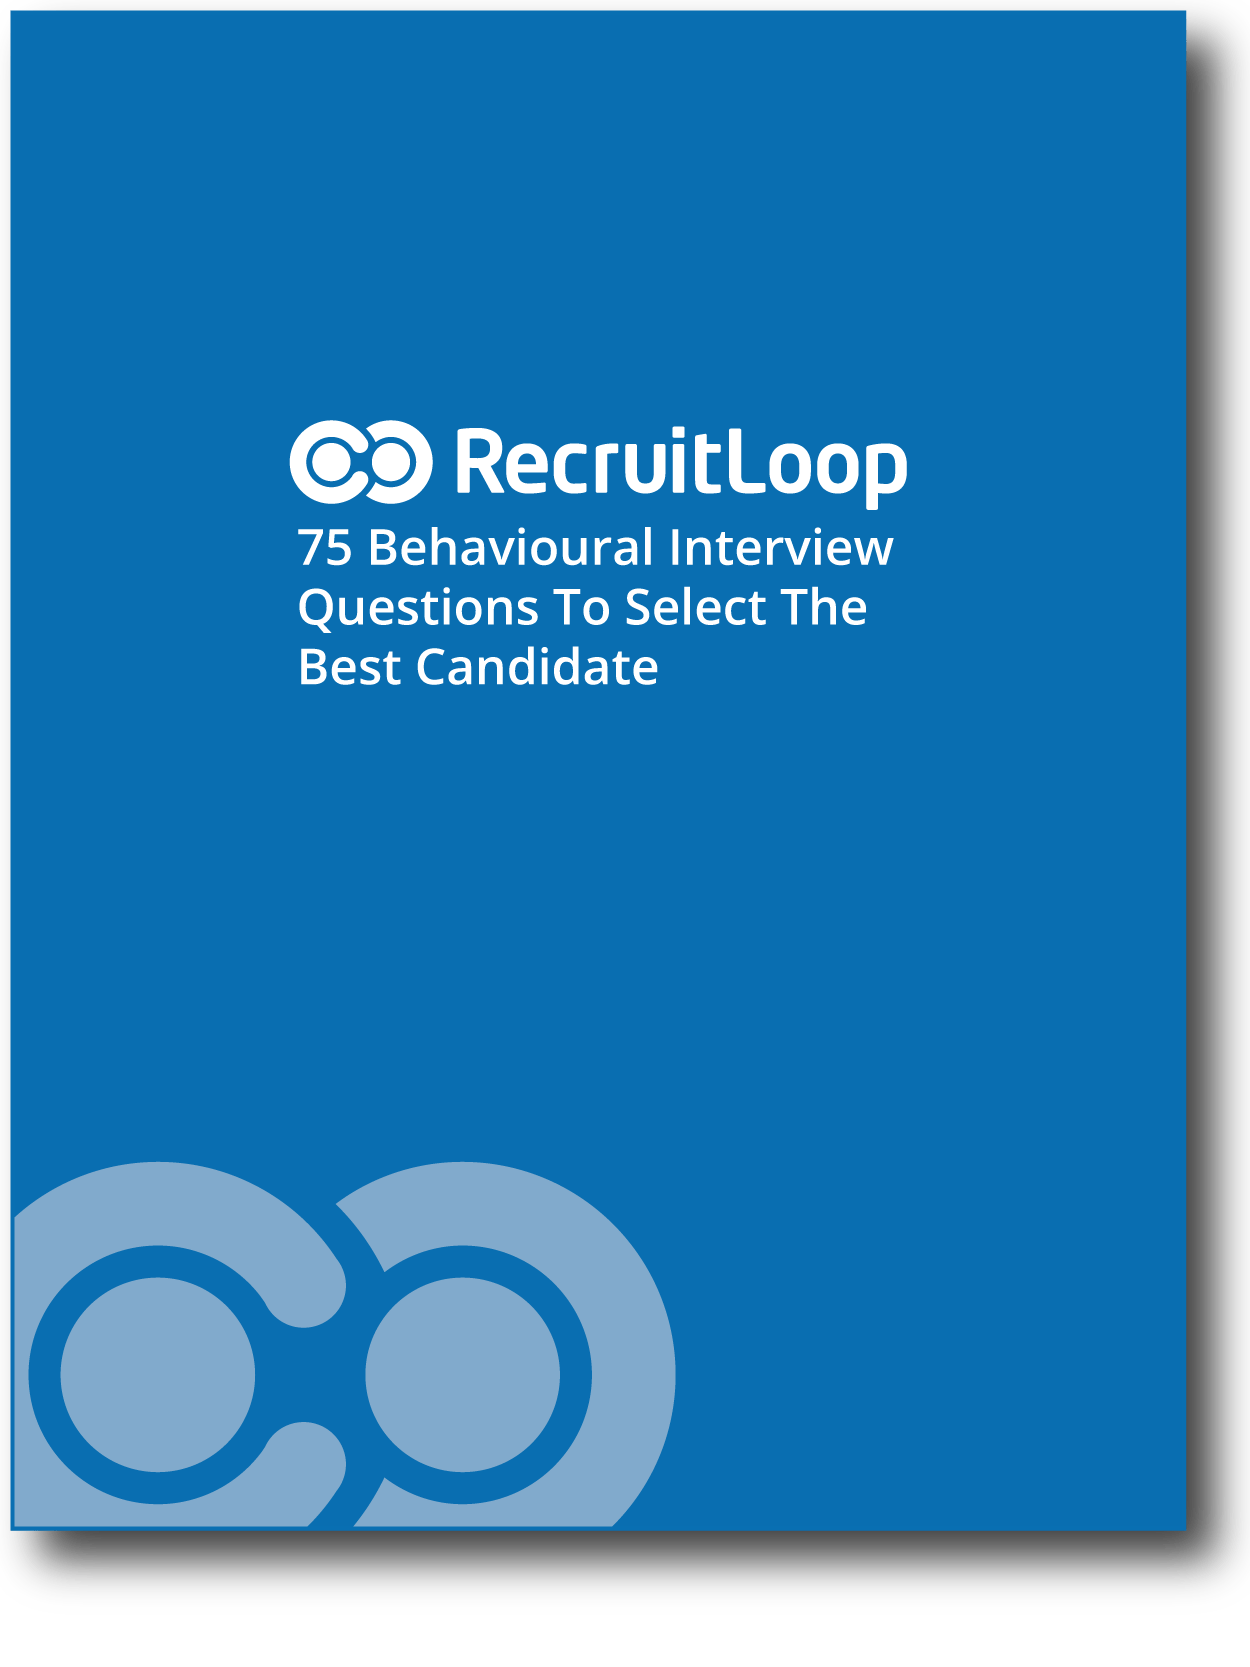 analyst competency questions resume writing resume examples analyst competency questions competency based interview questions and answers questions to select the best candidate behavioural